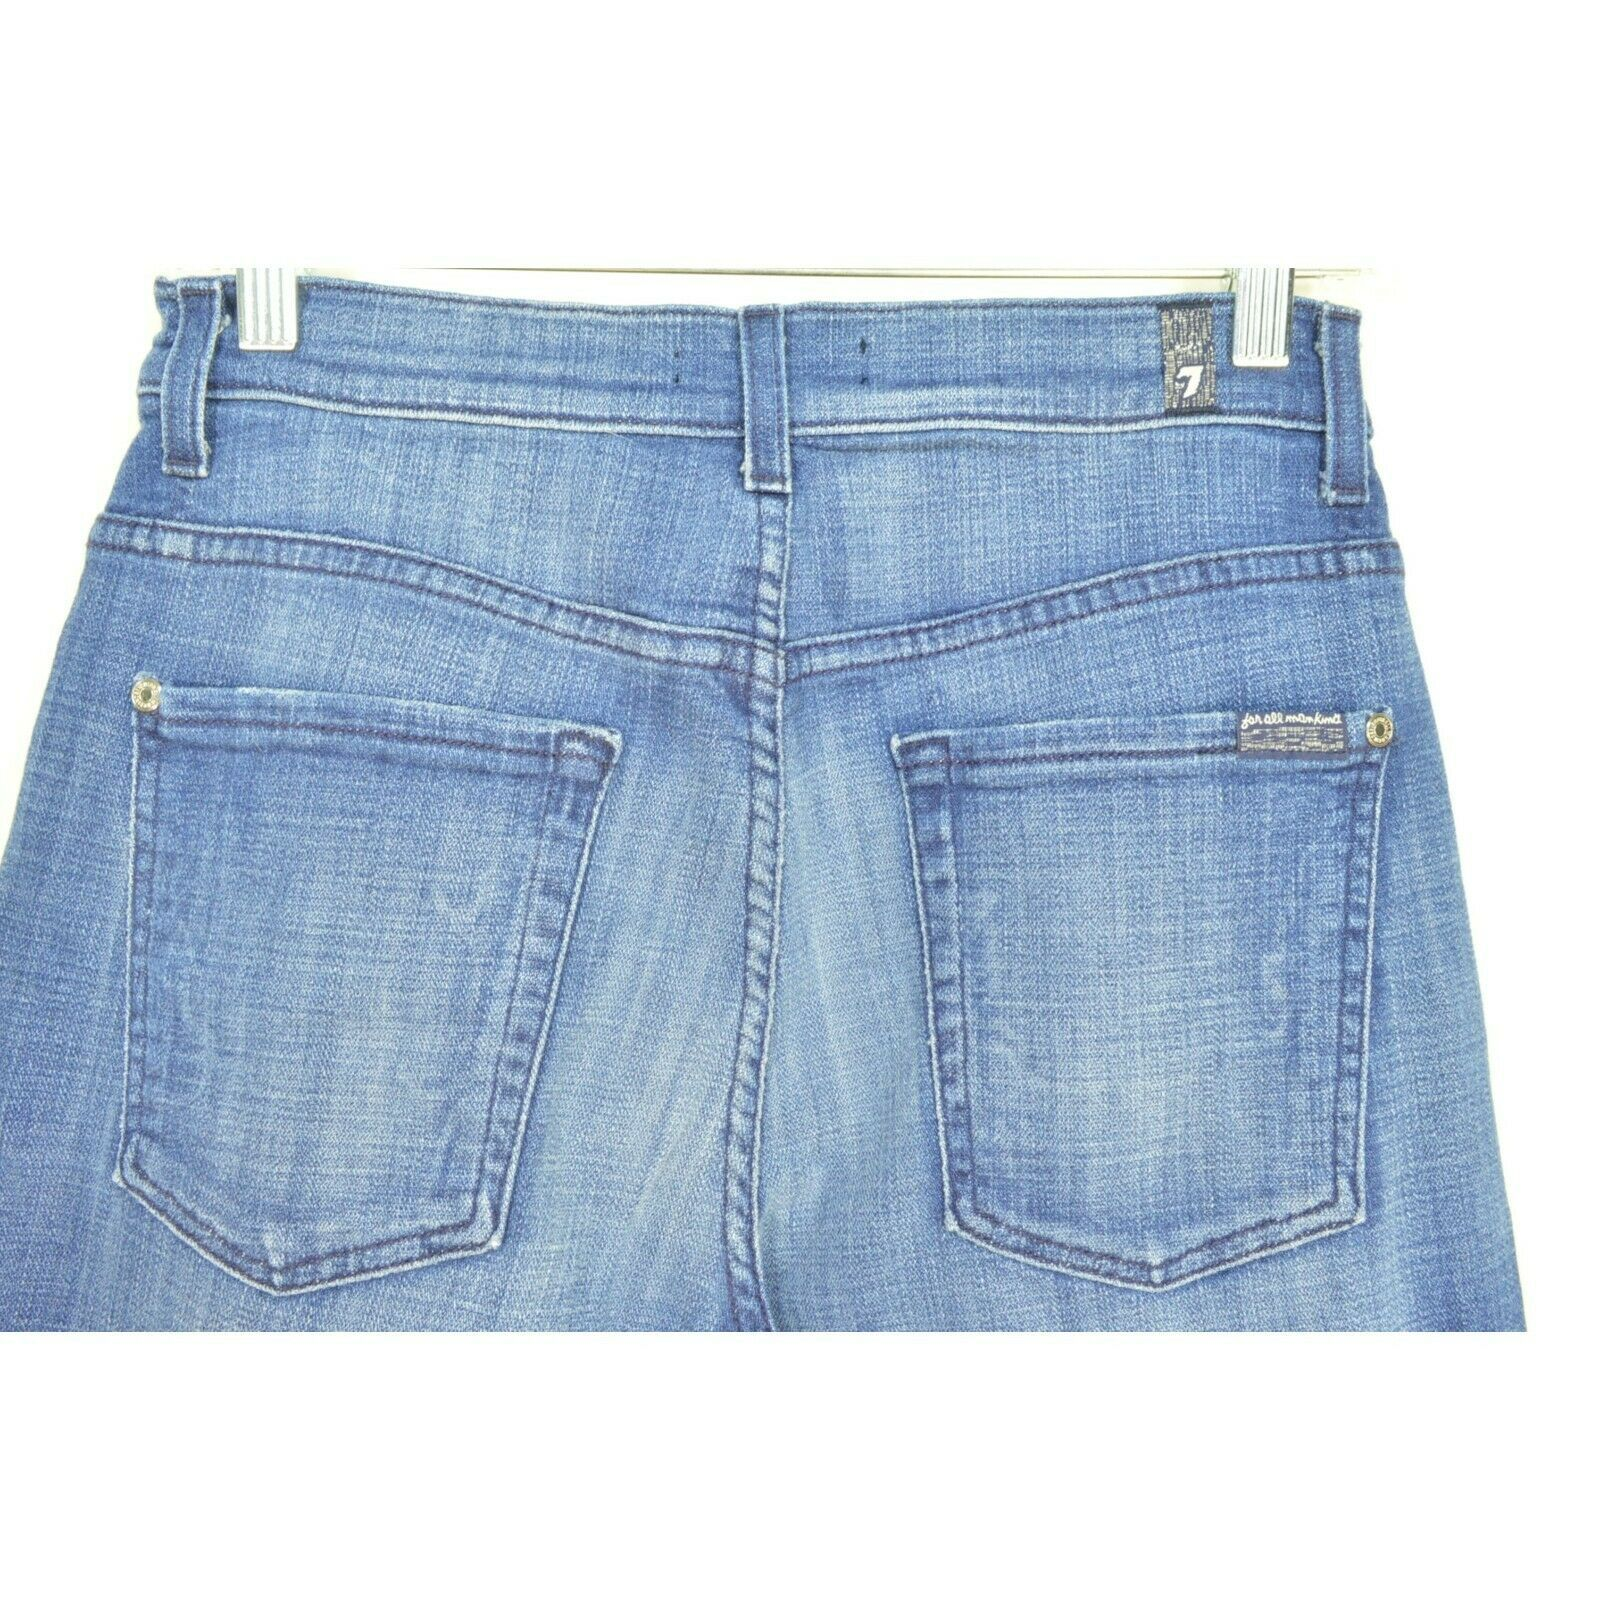 7 For All Mankind jeans cropped 29 x 24 NWT raw hem USA image 3